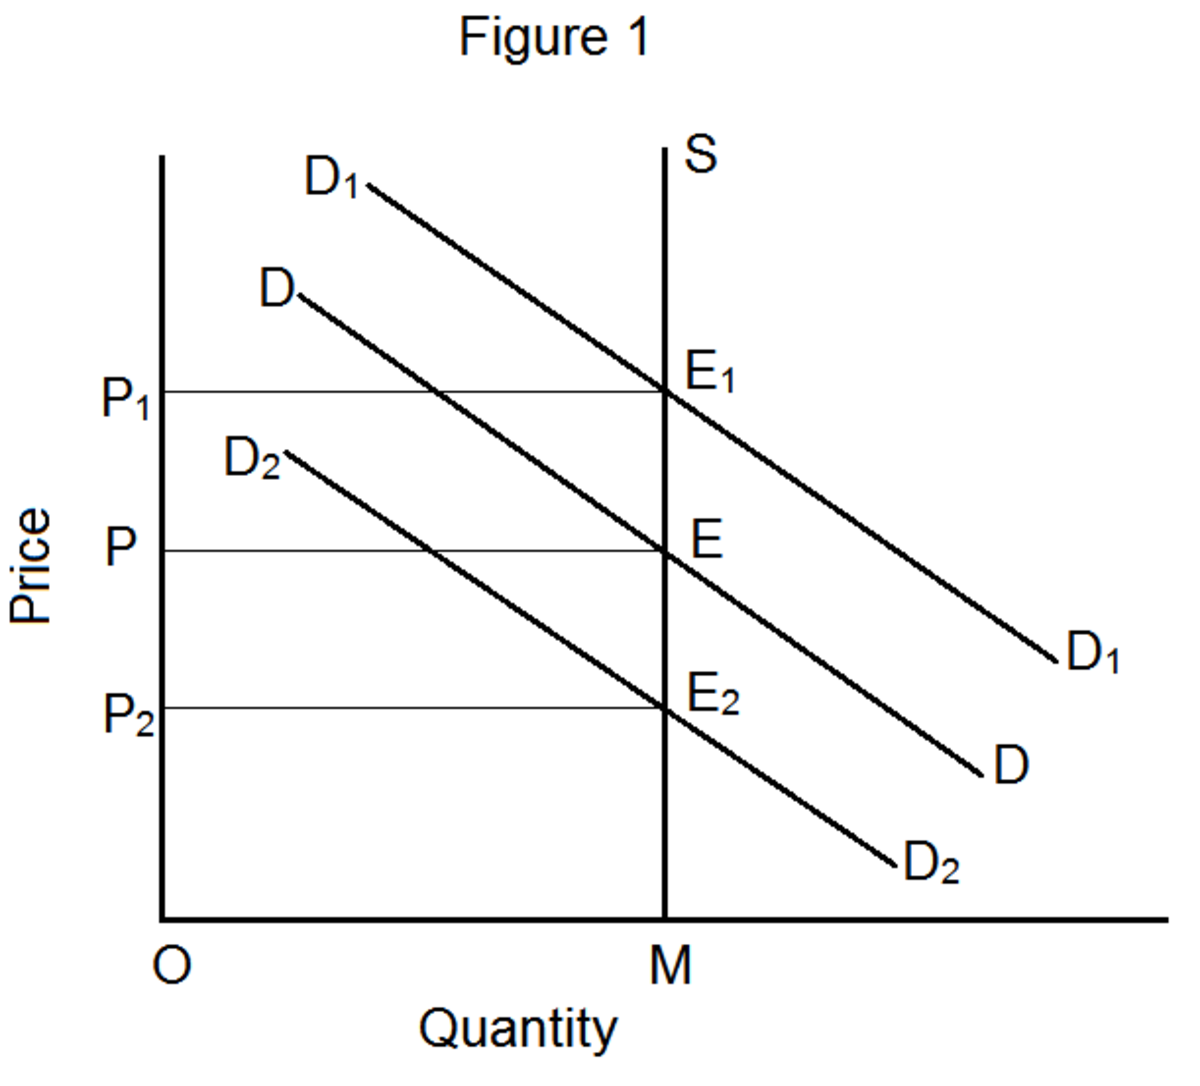 Equilibrium Price Determination in the Market Period and Short Period Under Perfect Competition